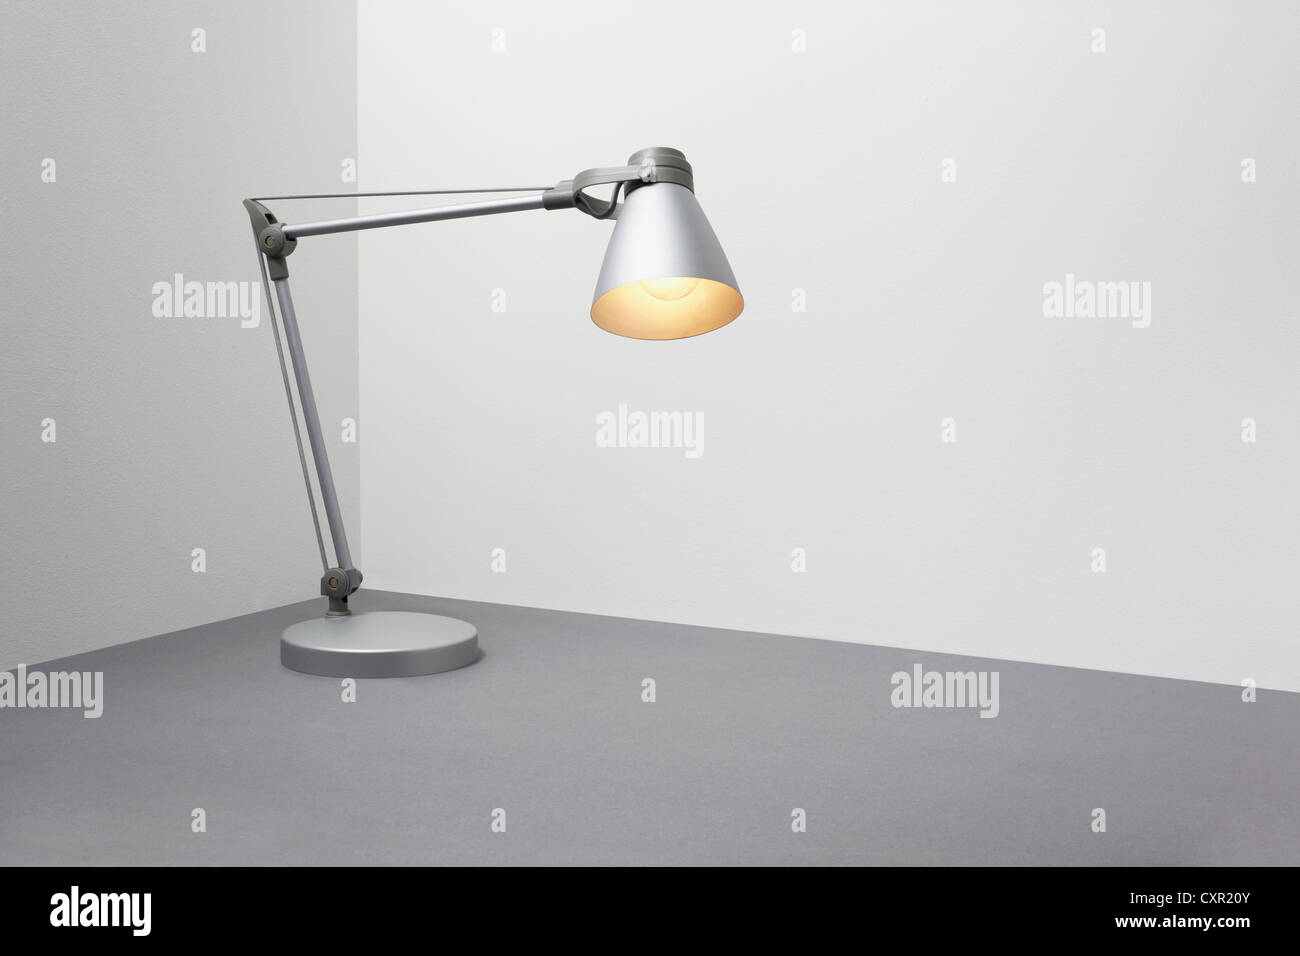 Desk lamp - Stock Image